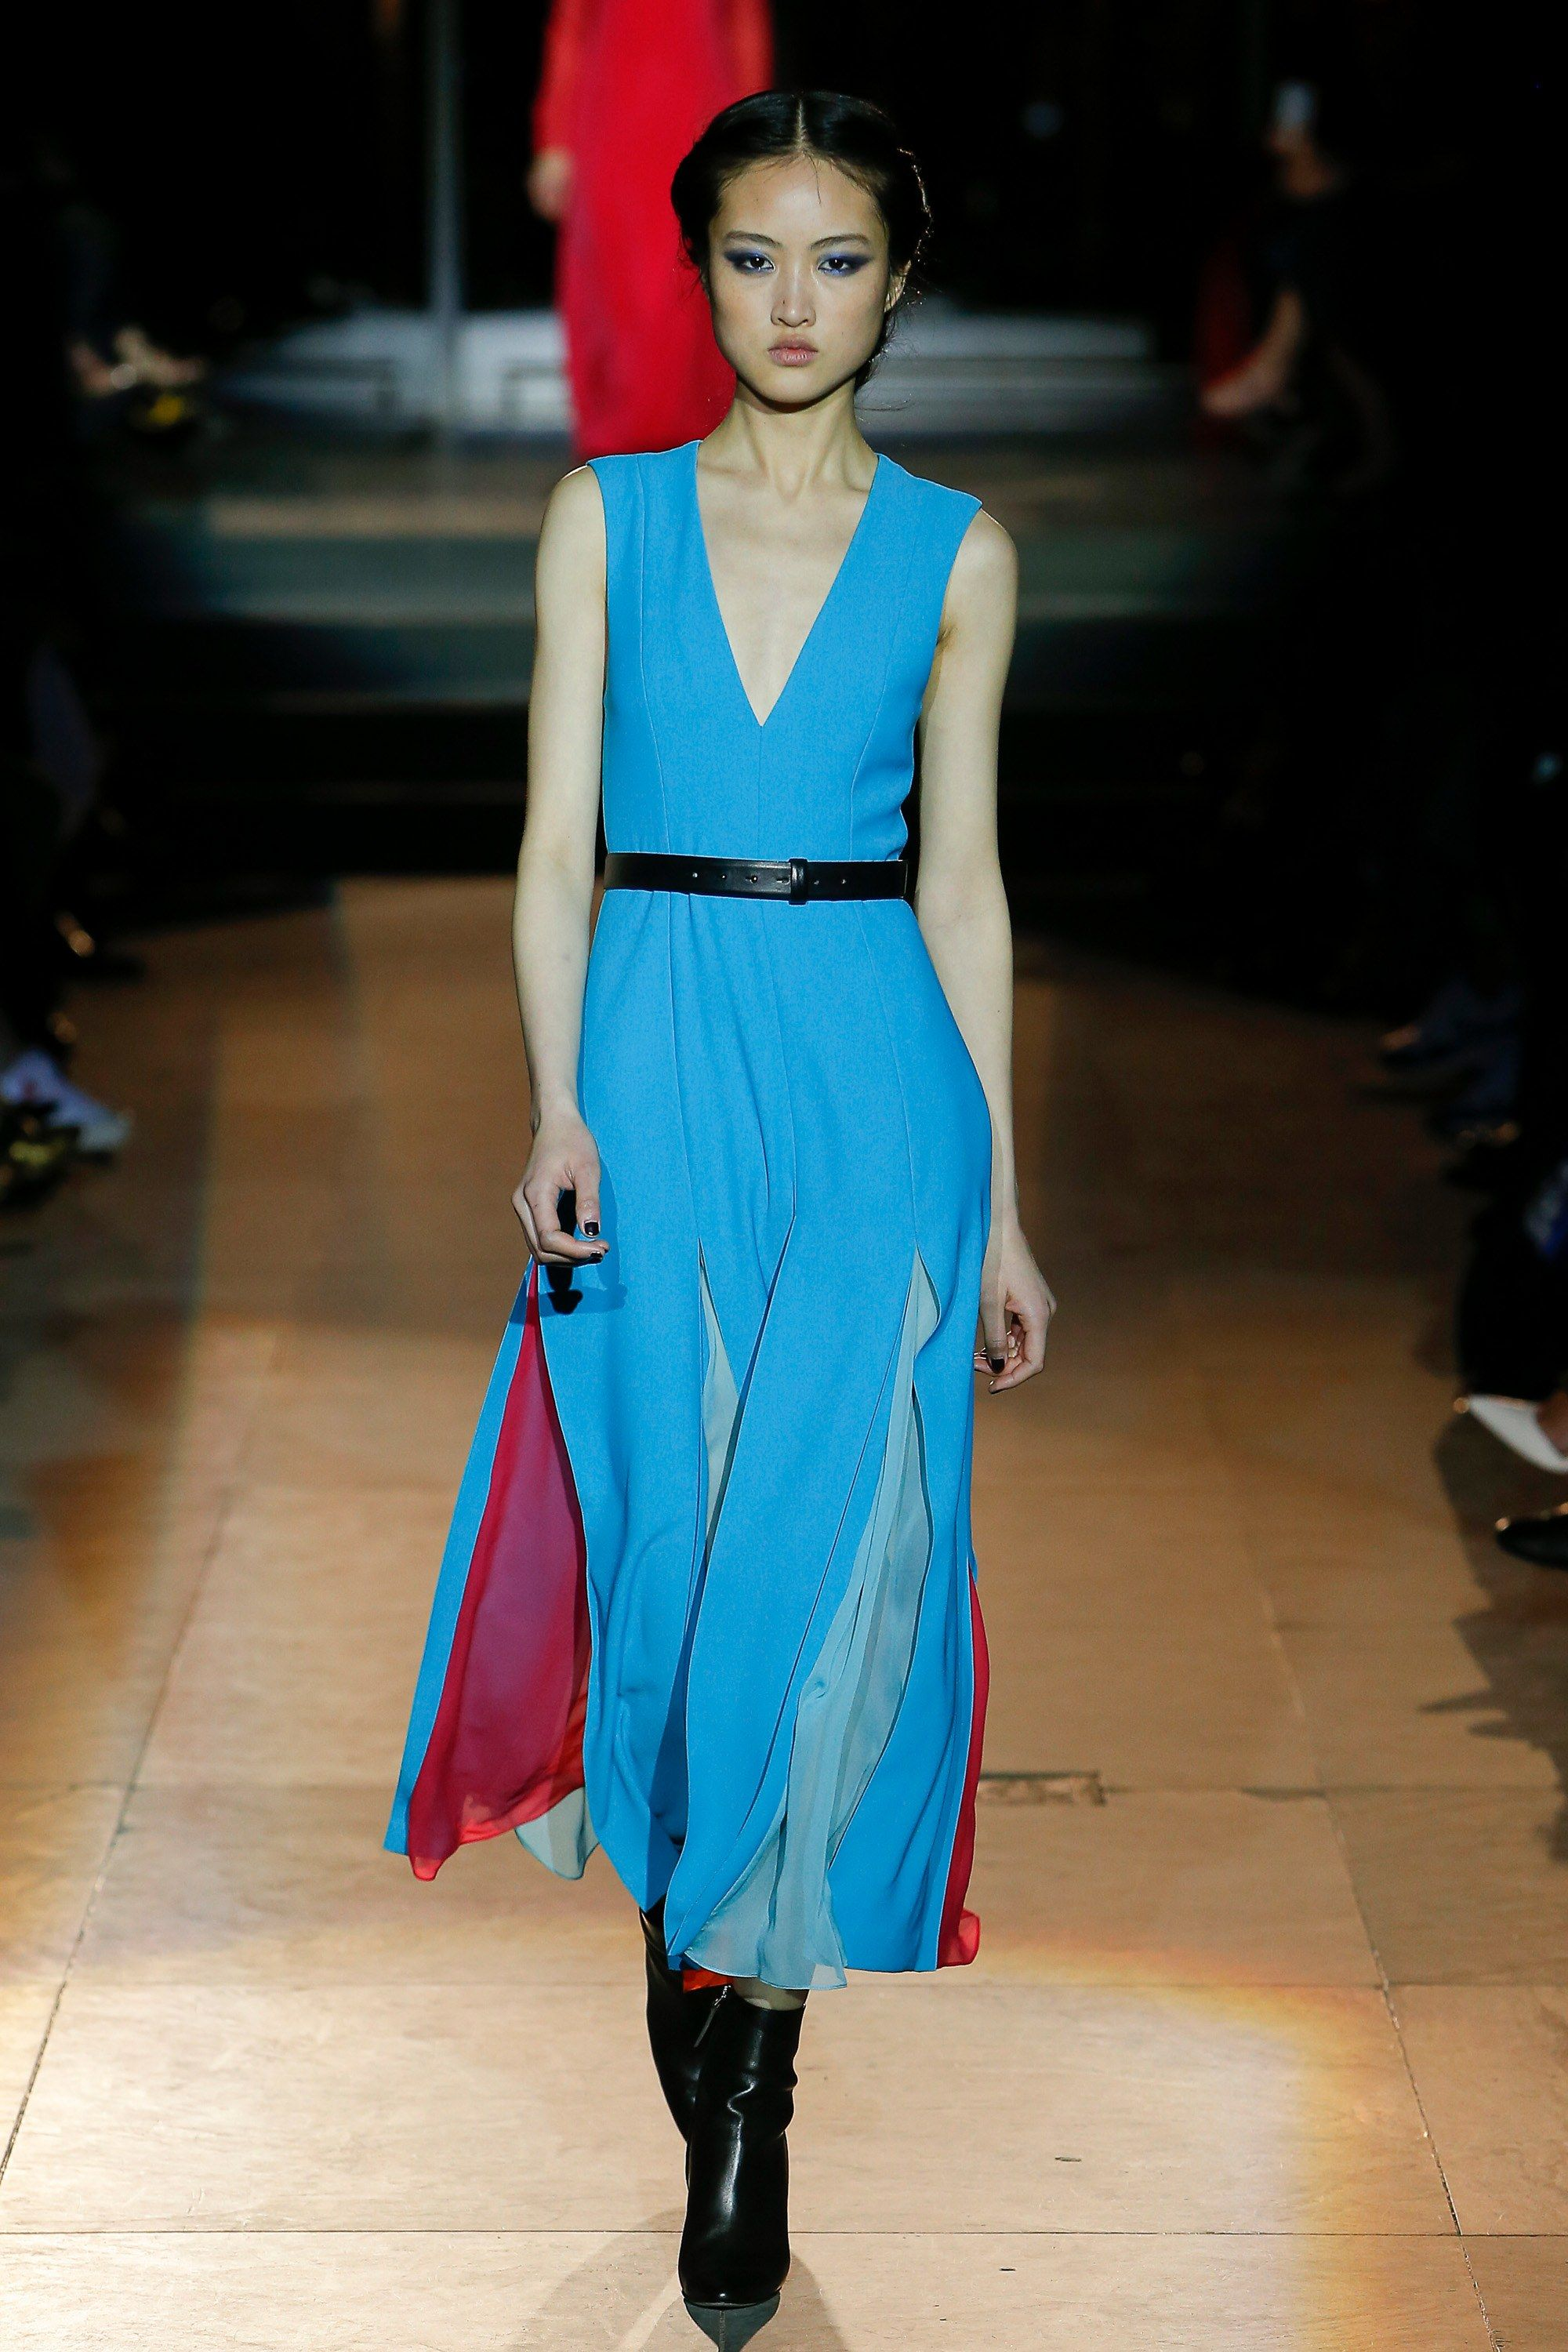 998e43a162763 The complete Carolina Herrera Fall 2018 Ready-to-Wear fashion show now on  Vogue Runway.